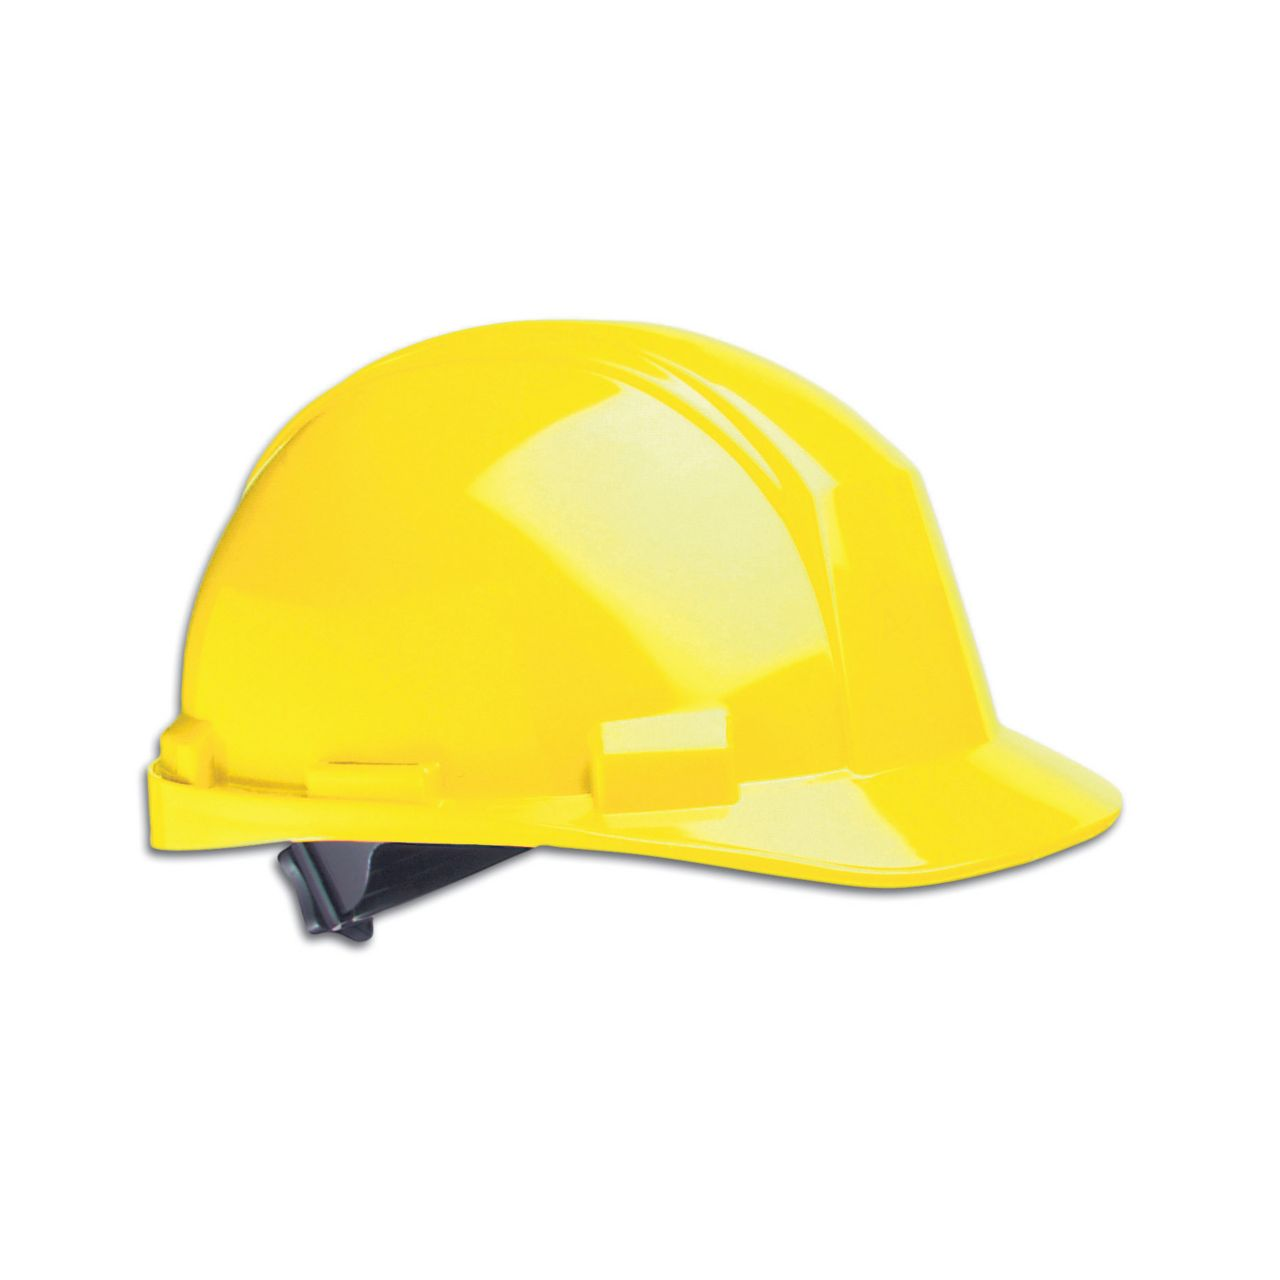 A89R_yellow_North_Hard_Hat